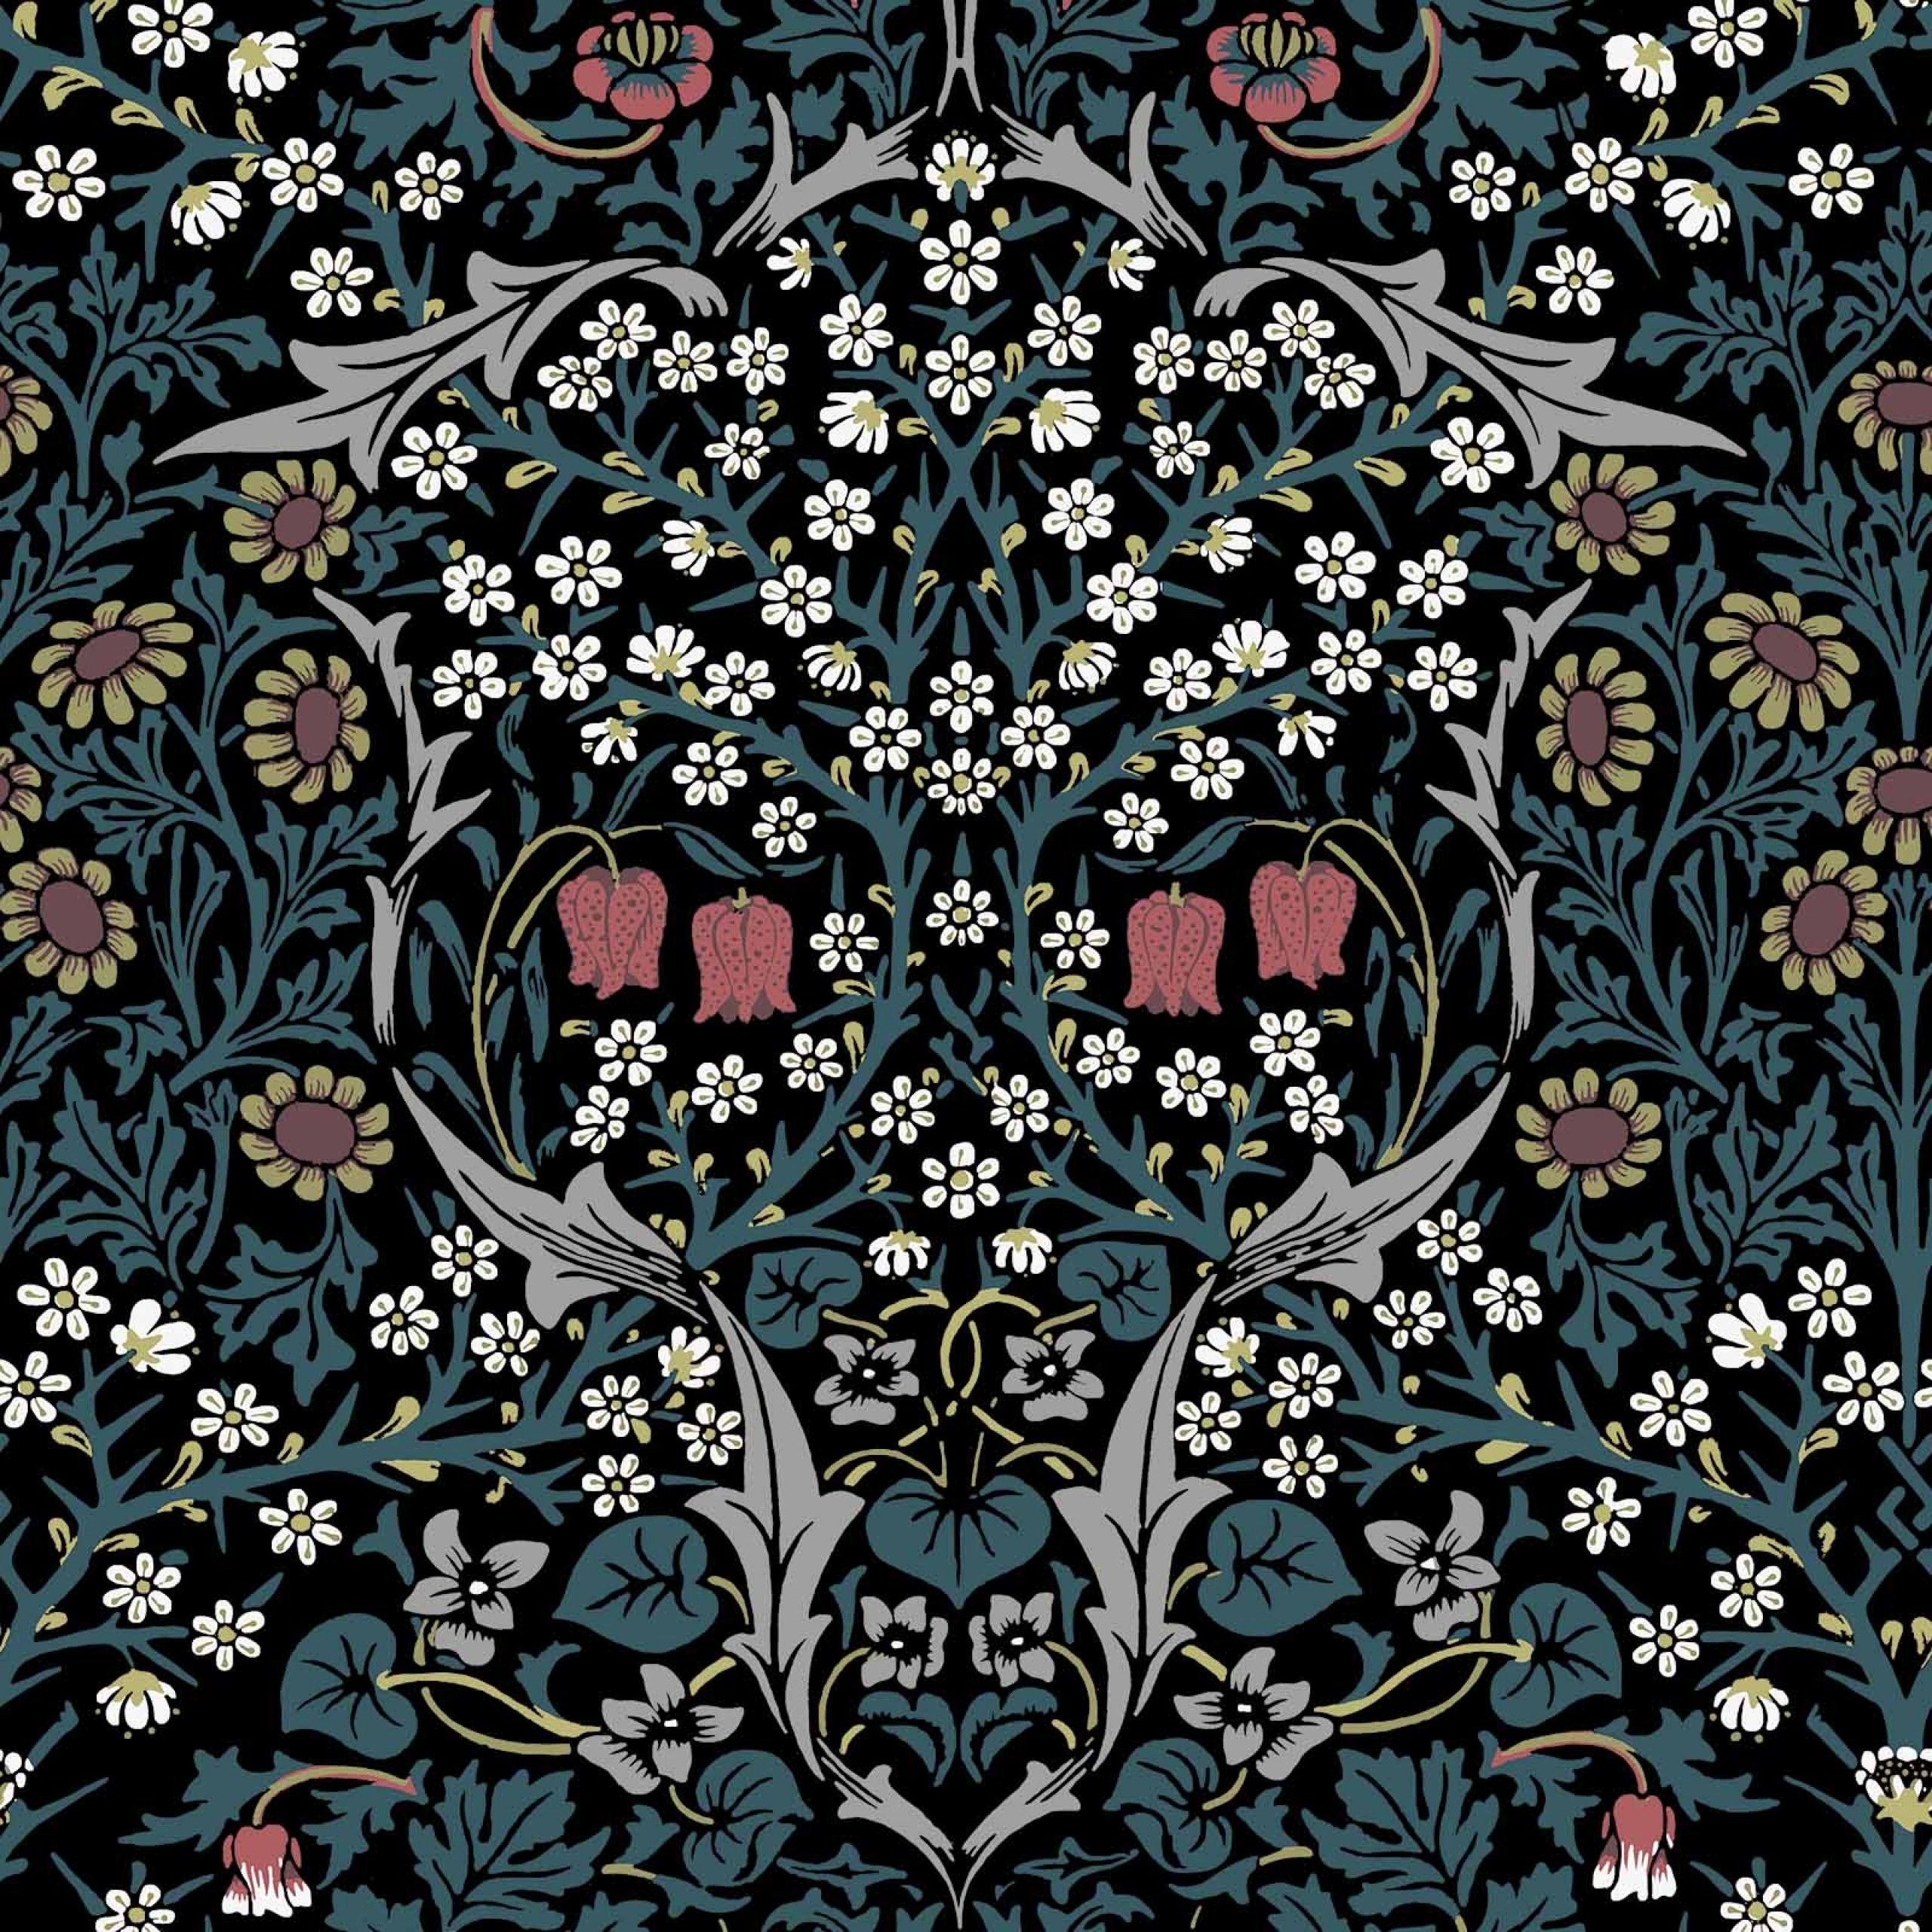 blackthorn_teal.jpg (2560×2560) William morris designs